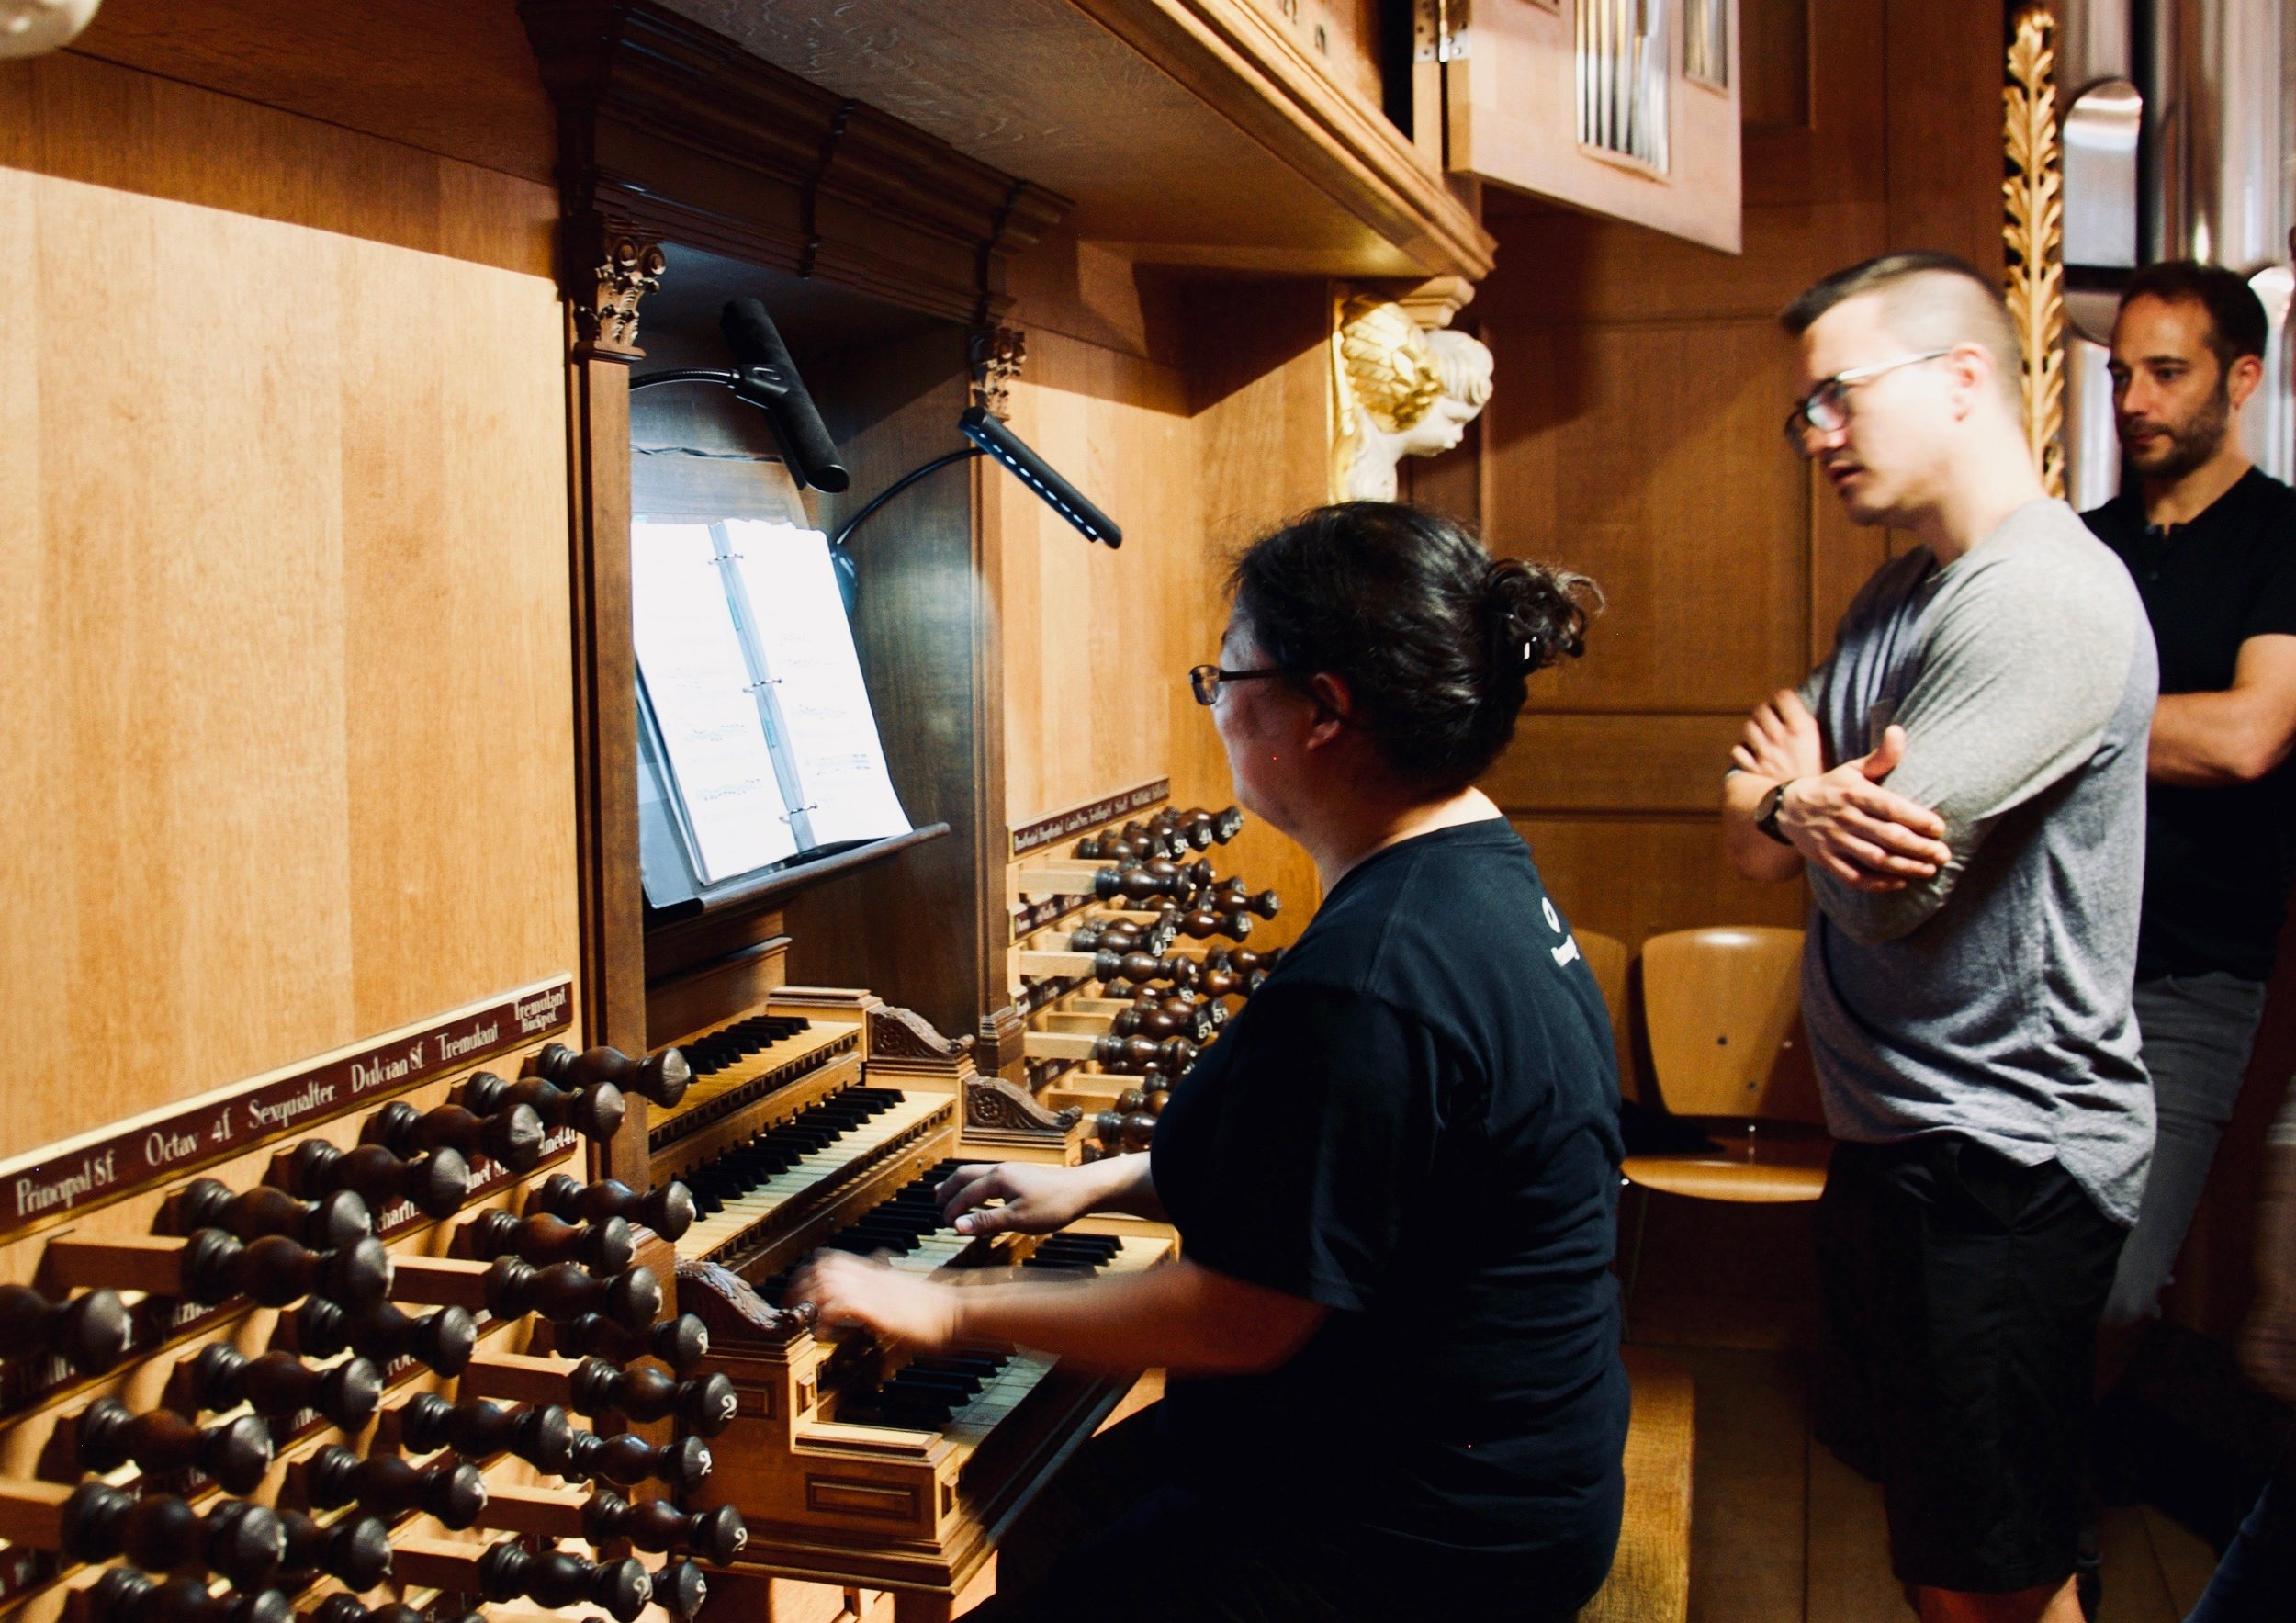 Jennifer Hsiao plays the 1693 Schnitger organ in St. Jacobi, Hamburg, with resident organist Gerhard Löffler looking on.